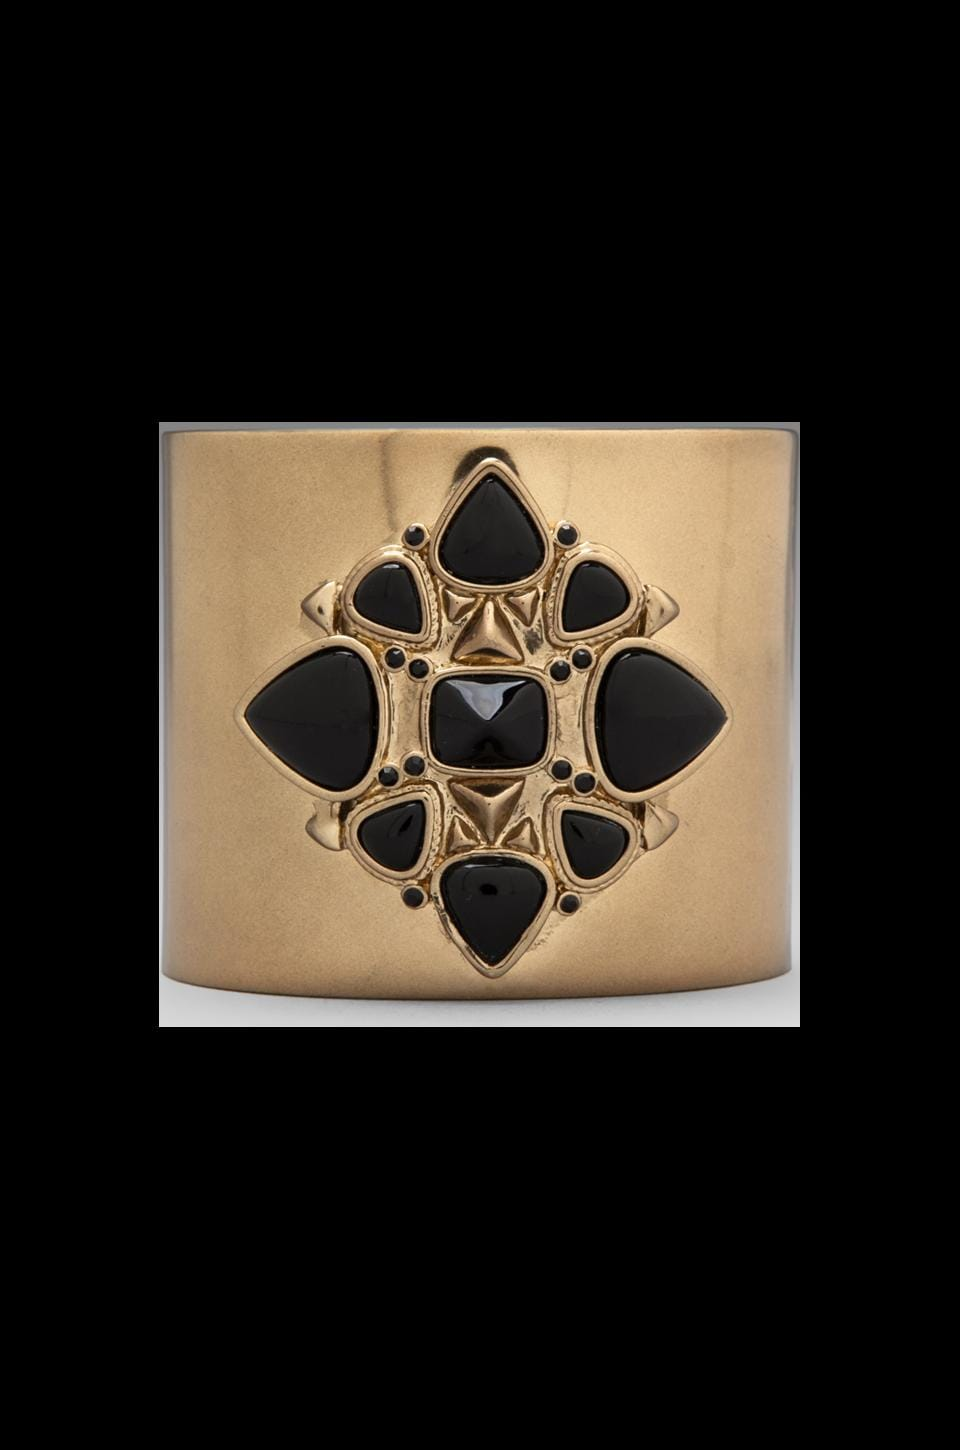 House of Harlow 1960 House of Harlow Kaleidoscope Cuff in Gold/Black